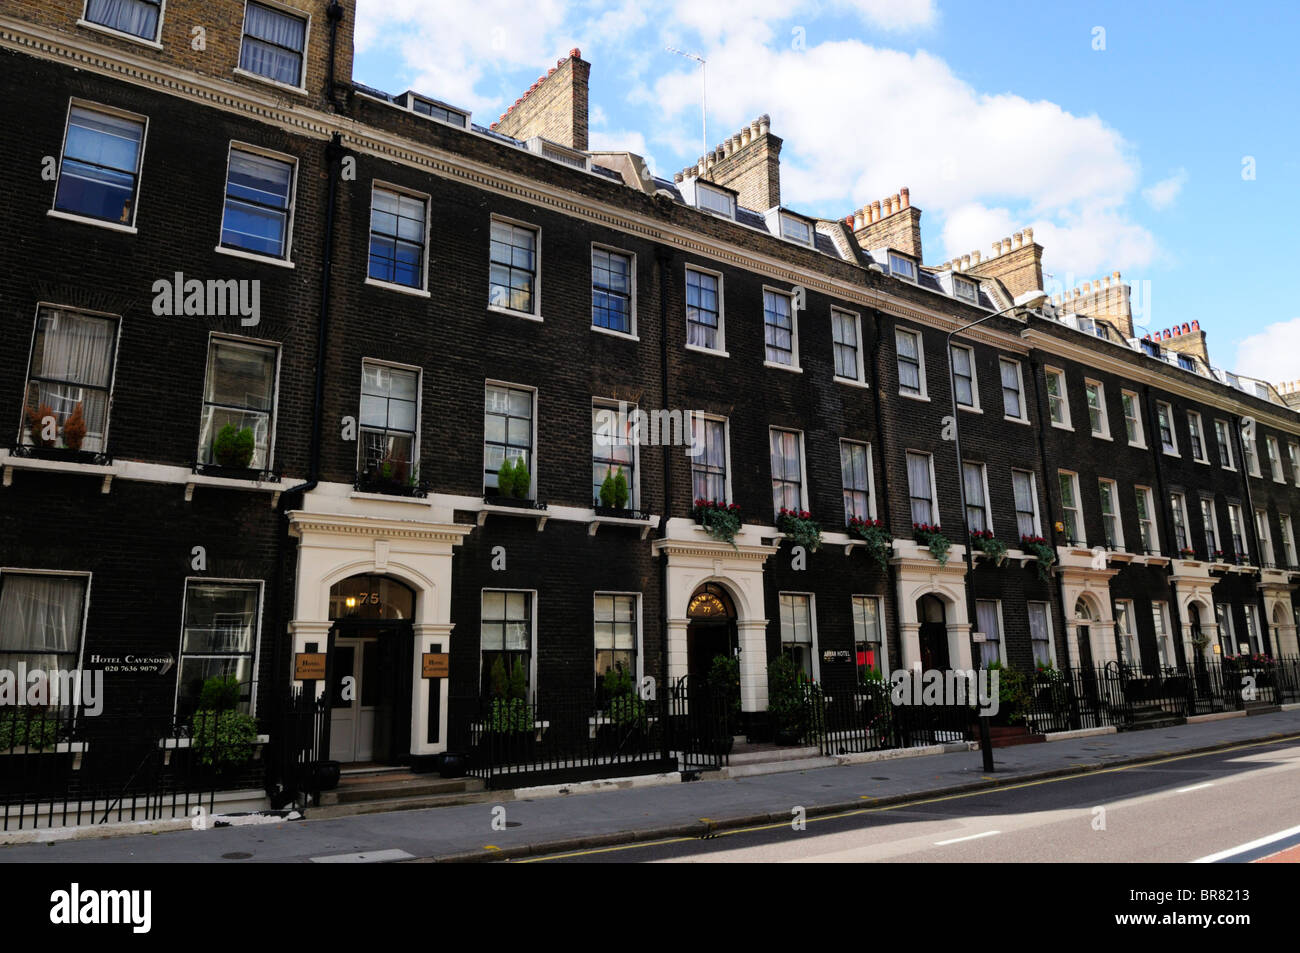 A Terraced Row of Hotels In Gower Street, Bloomsbury, London, England, UK - Stock Image